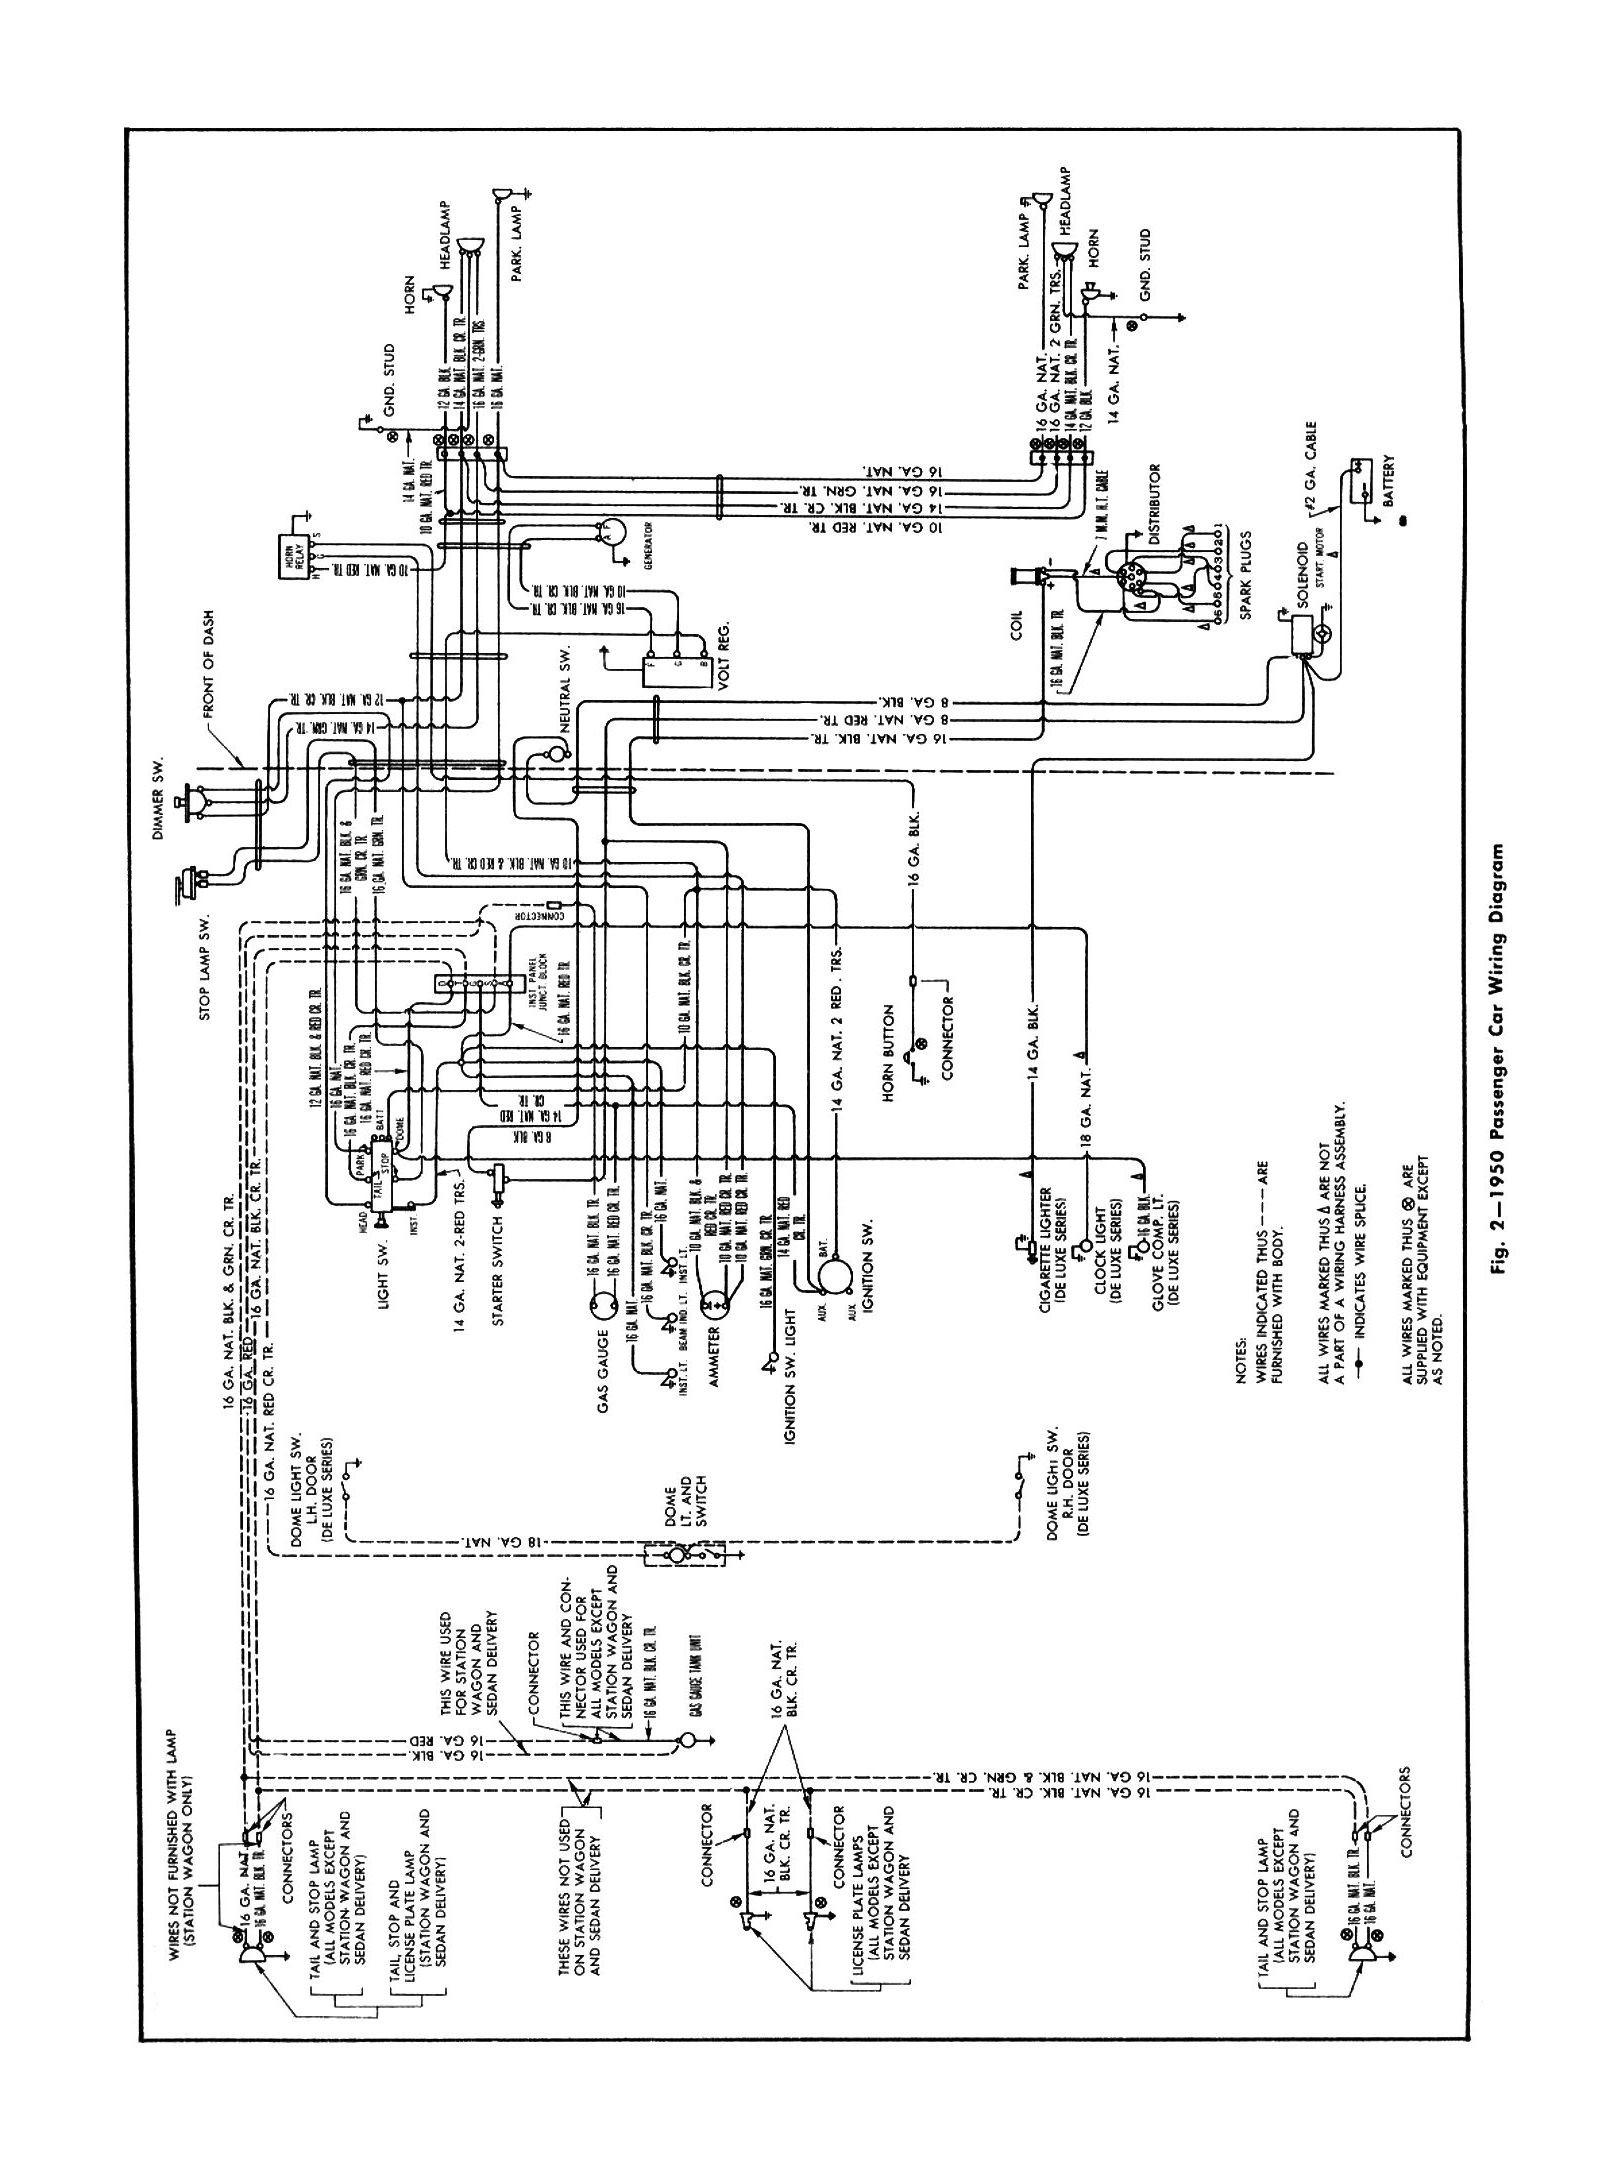 1939 Ford Wiring Harness Diagram Schemes Escape 1952 Chevy Detailed Schematics Rh Antonartgallery Com